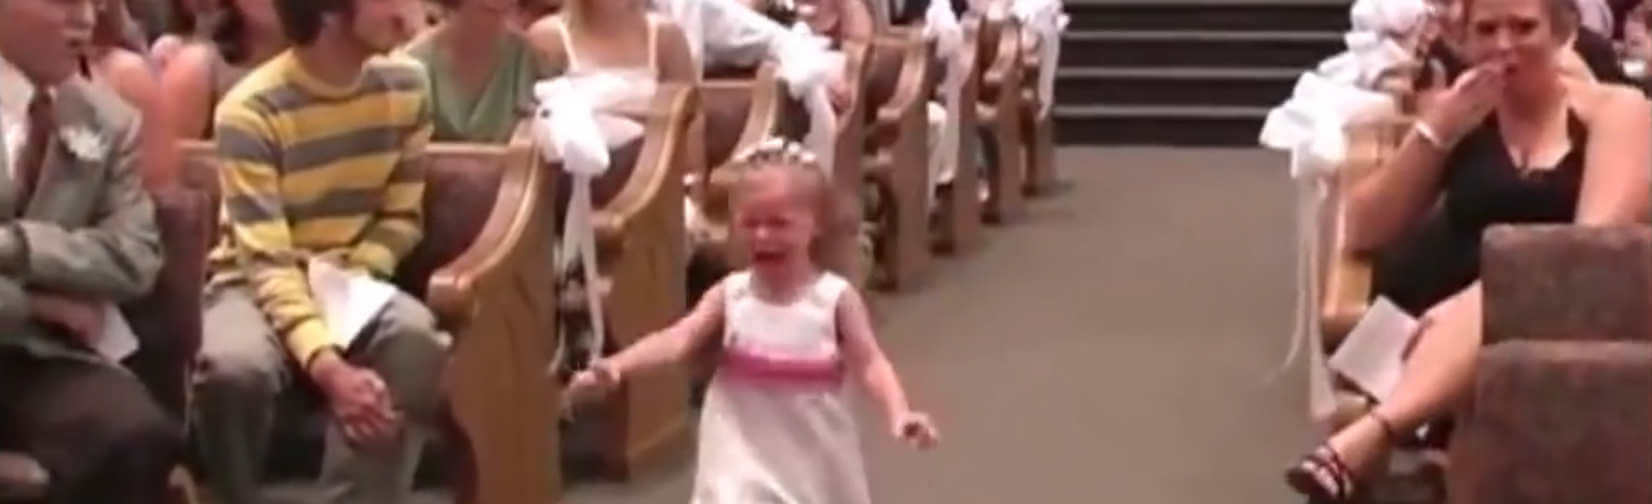 Hilarious clips of children at weddings sometimes it never goes as planned